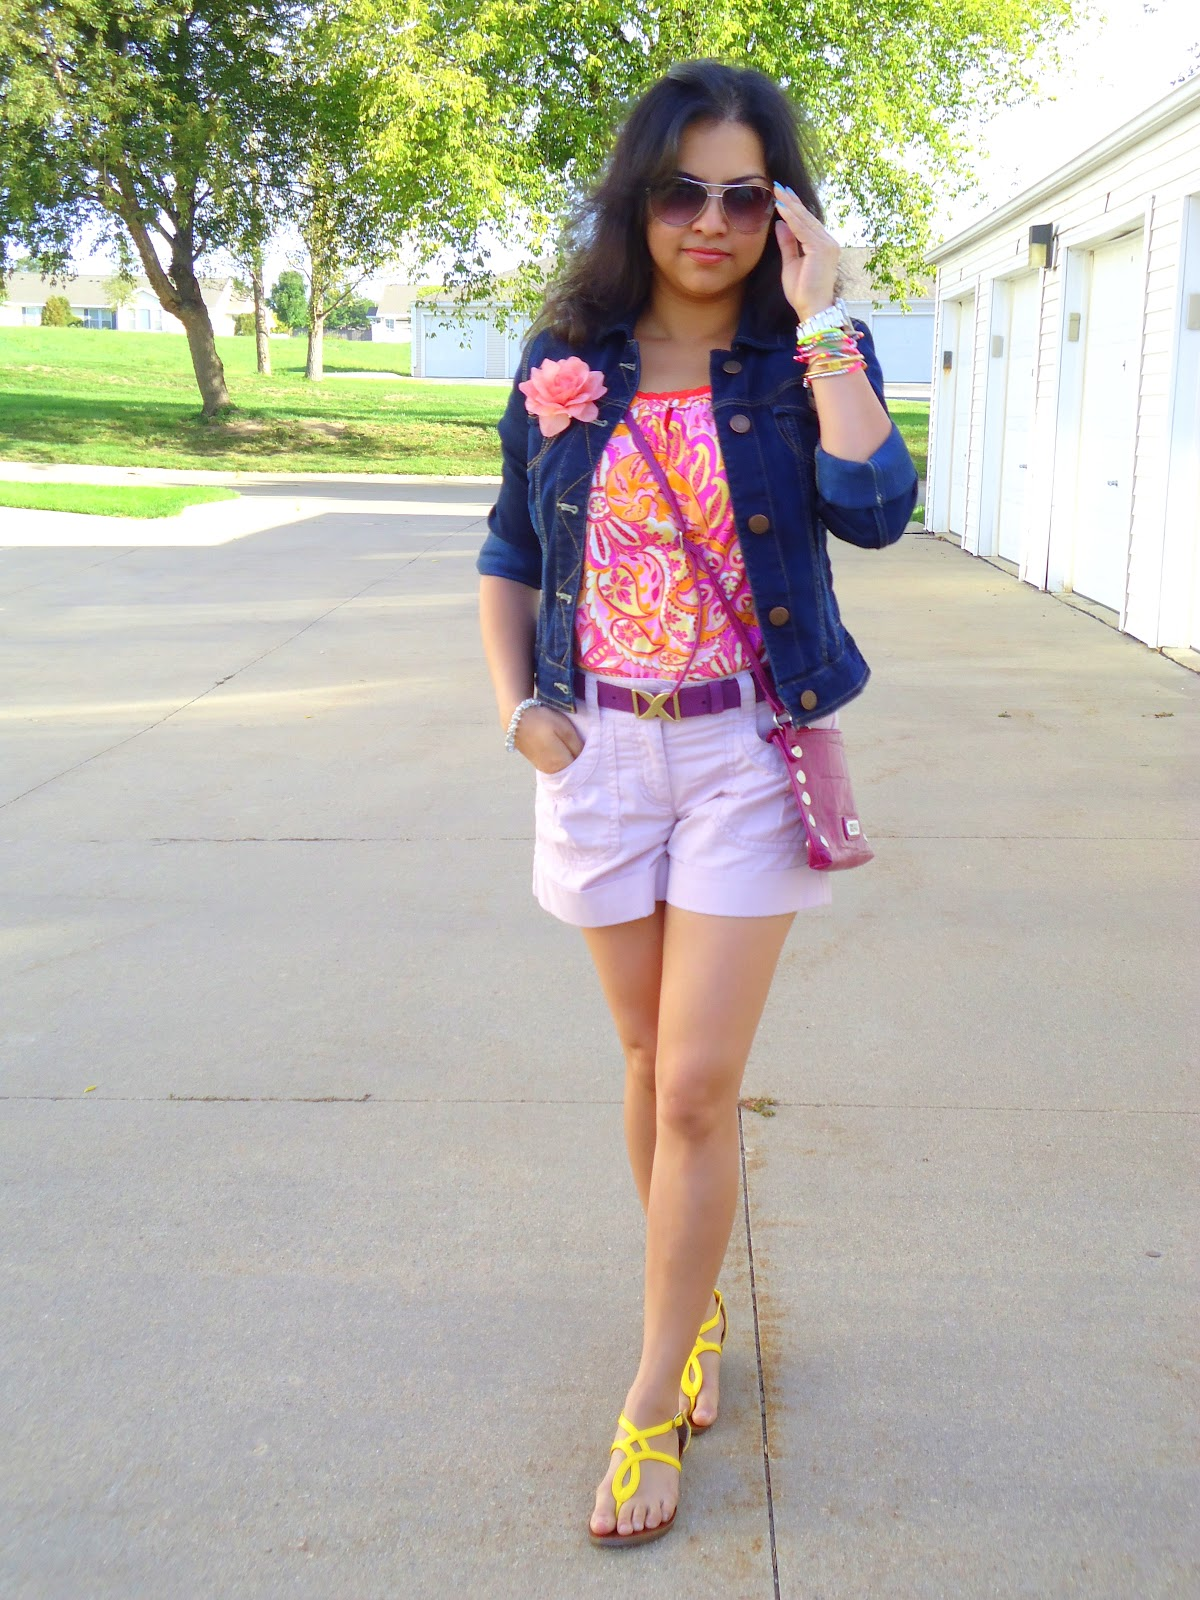 c3370e5406f9 Today I'm linking up with Two Thirty-Five Designs for her Casual Friday  Link Up!